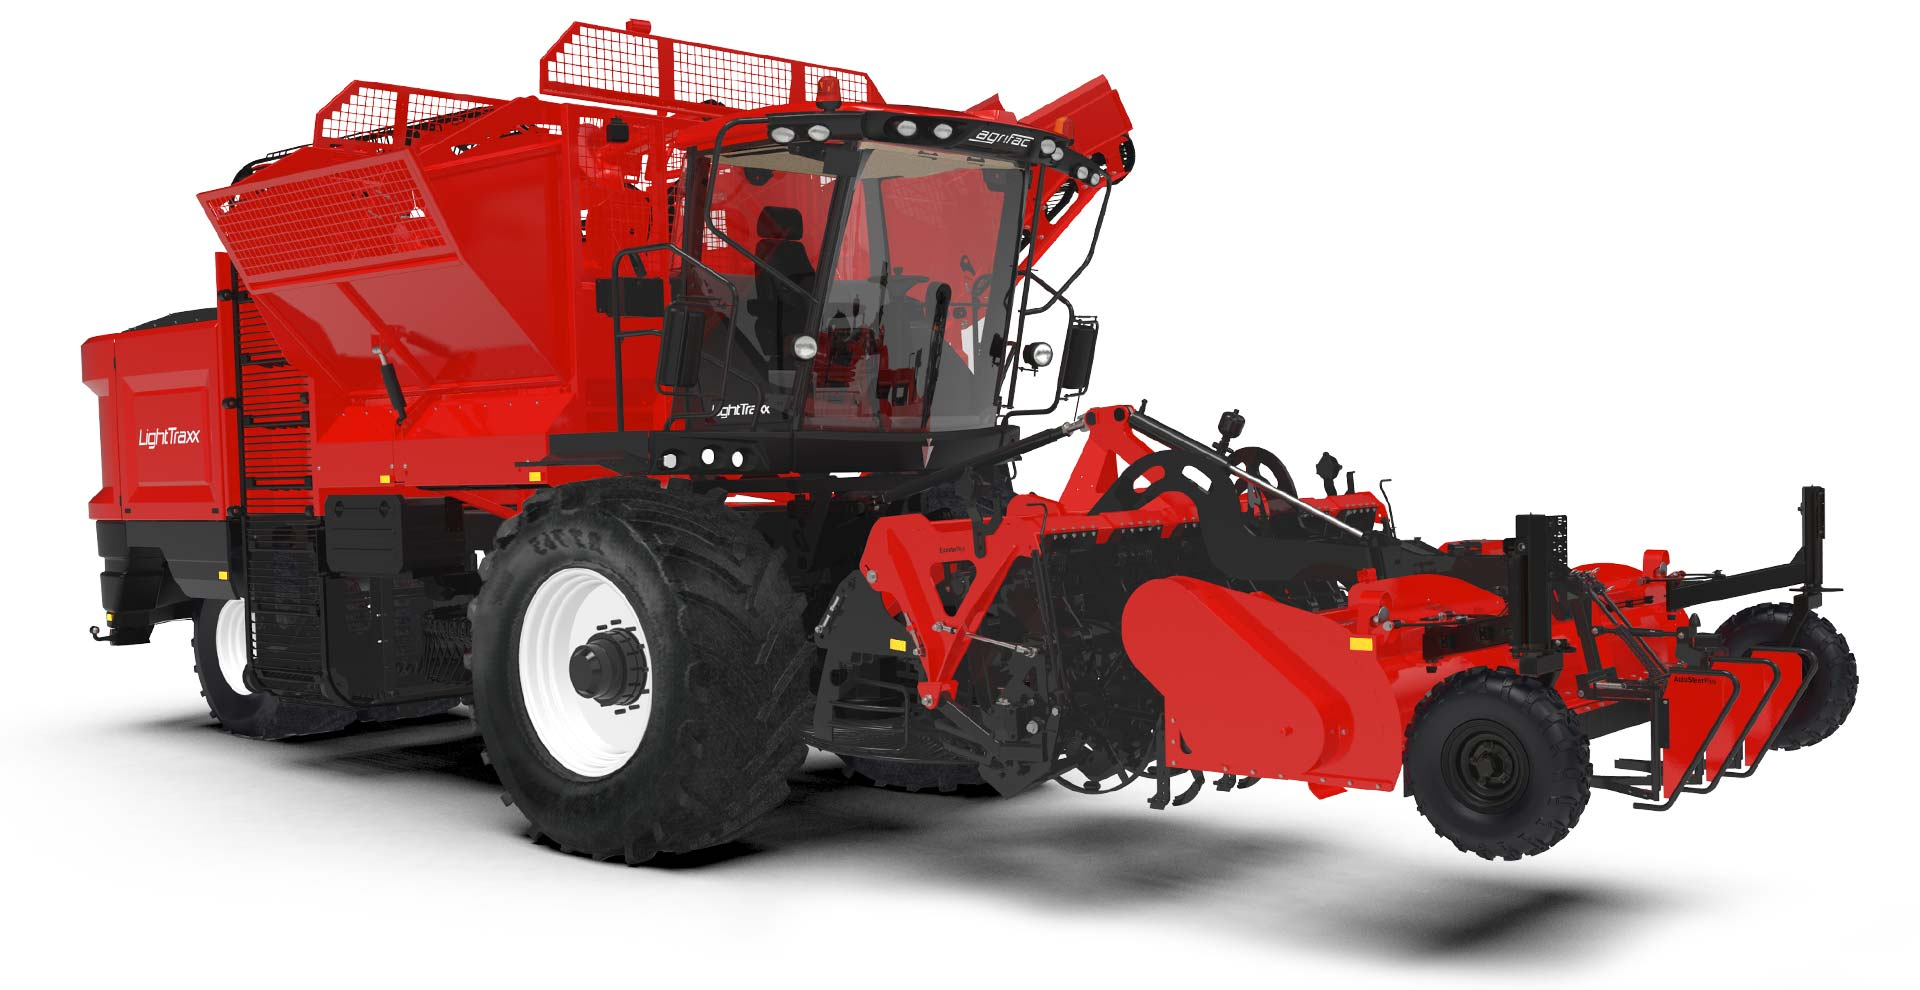 LightTraxx beet harvester